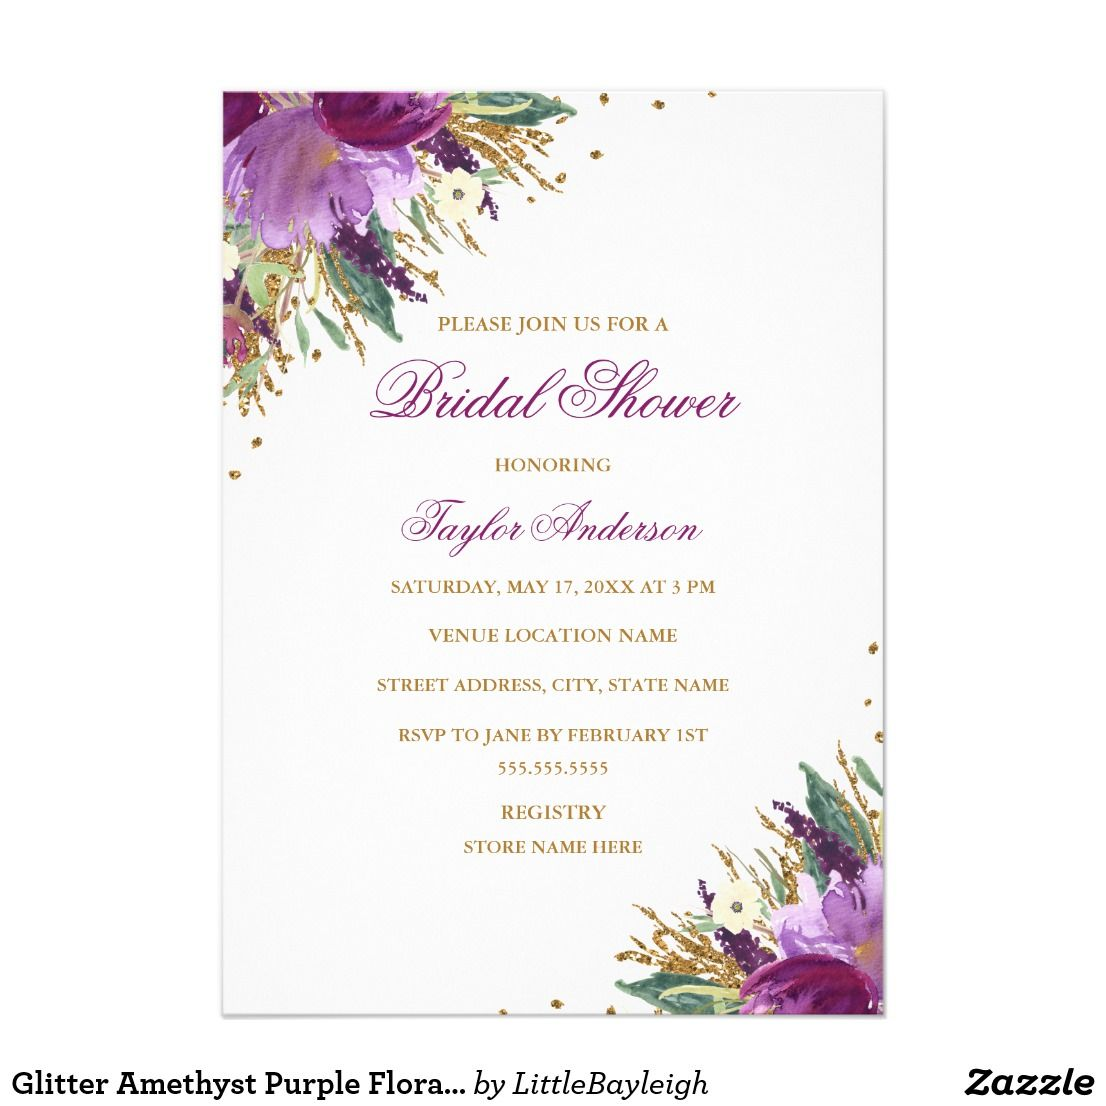 Glitter Amethyst Purple Floral Bridal Shower Card Bridal Shower